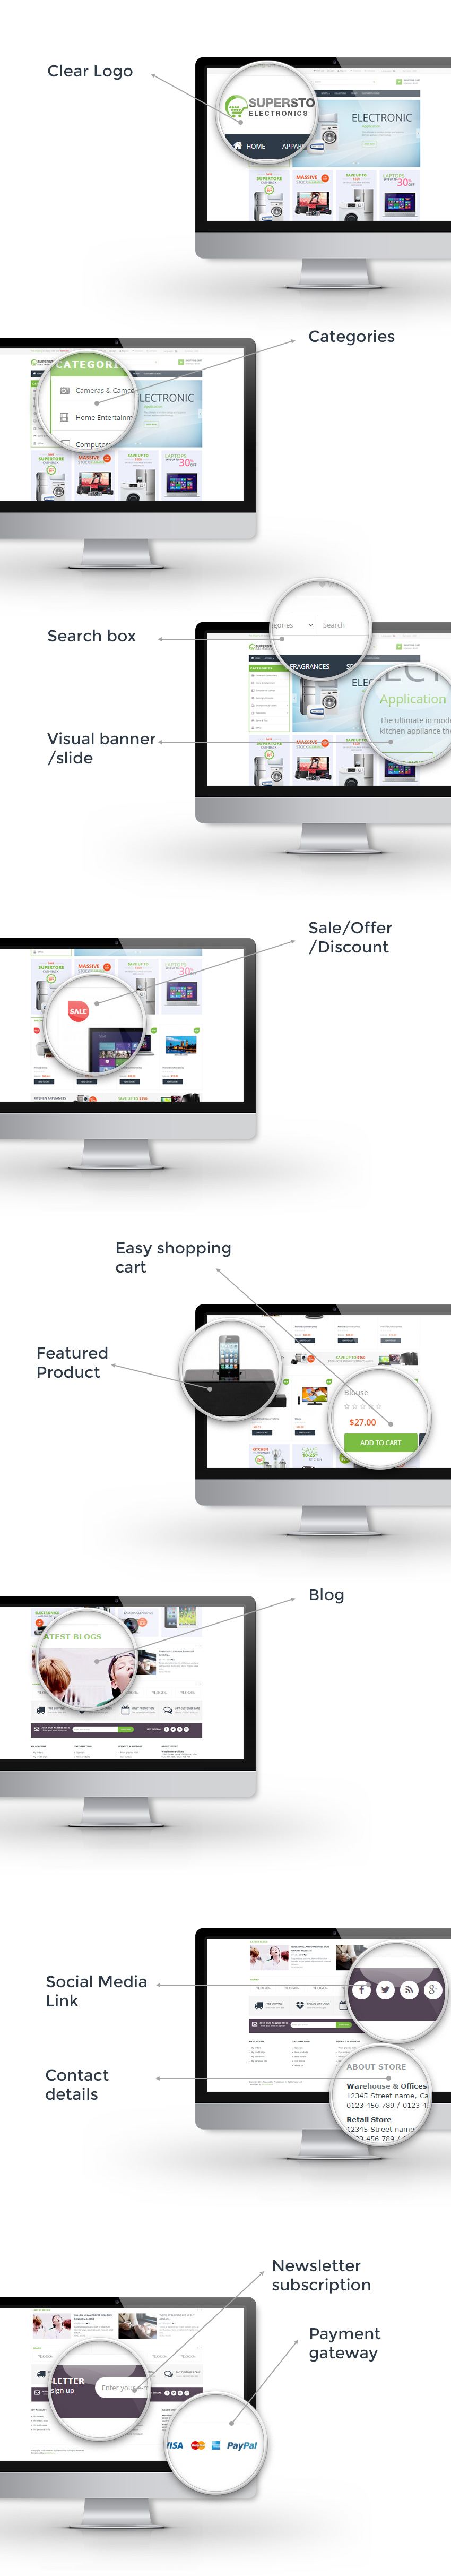 feature for e-commerce site